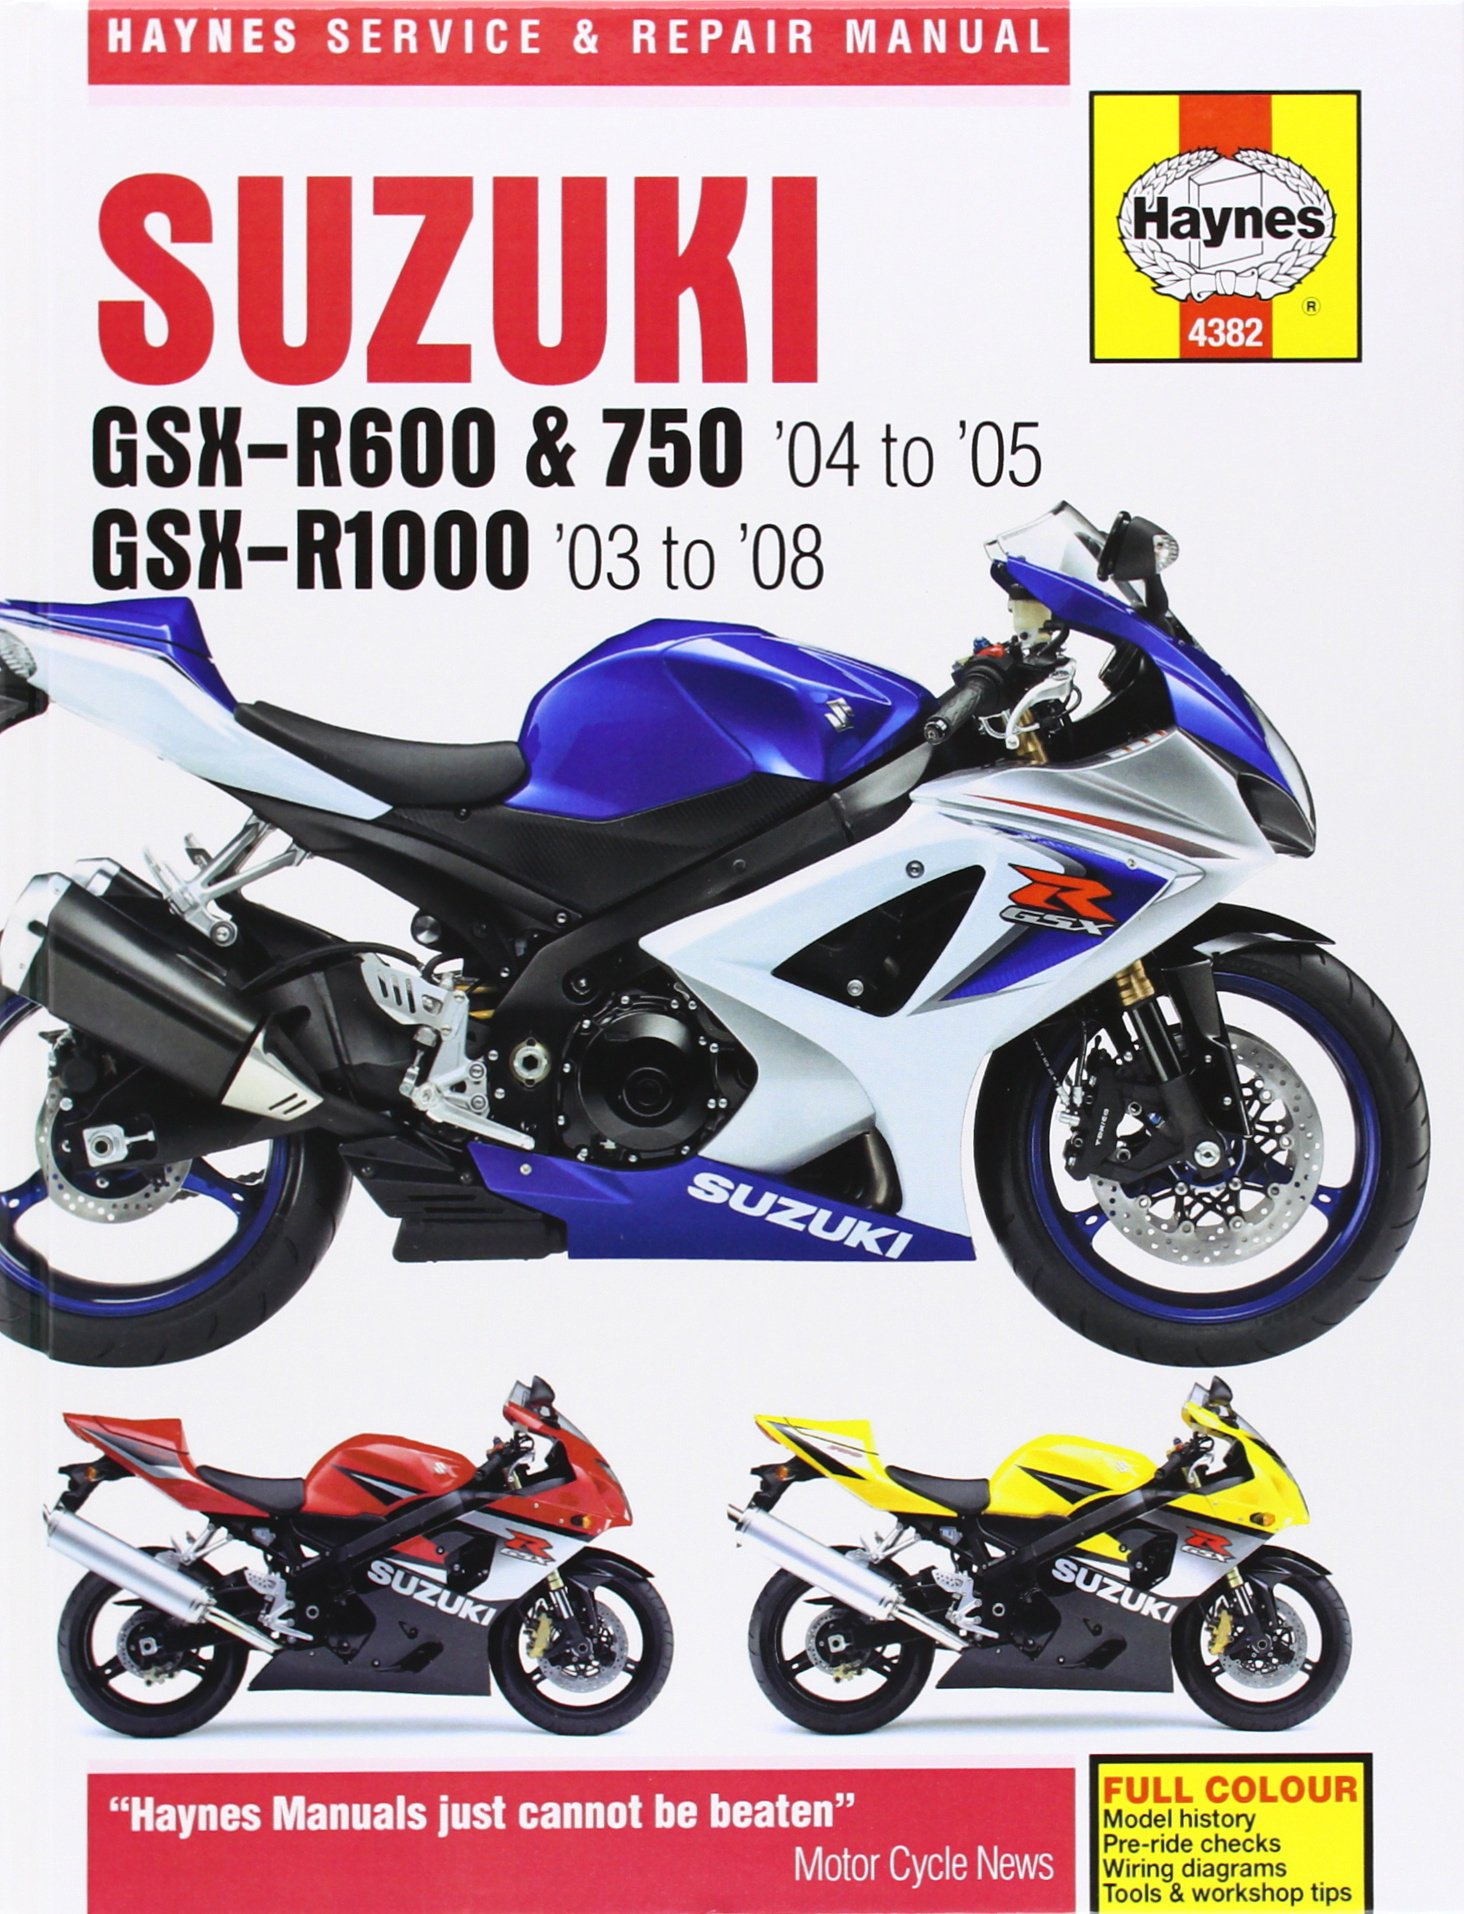 Suzuki GSX-R600 and 750 (04-05) GSX-R1000 (03-08) Service and Repair Manual  (Haynes Motorcycle Manuals): Matthew Coombs: 9781844258116: Amazon.com:  Books